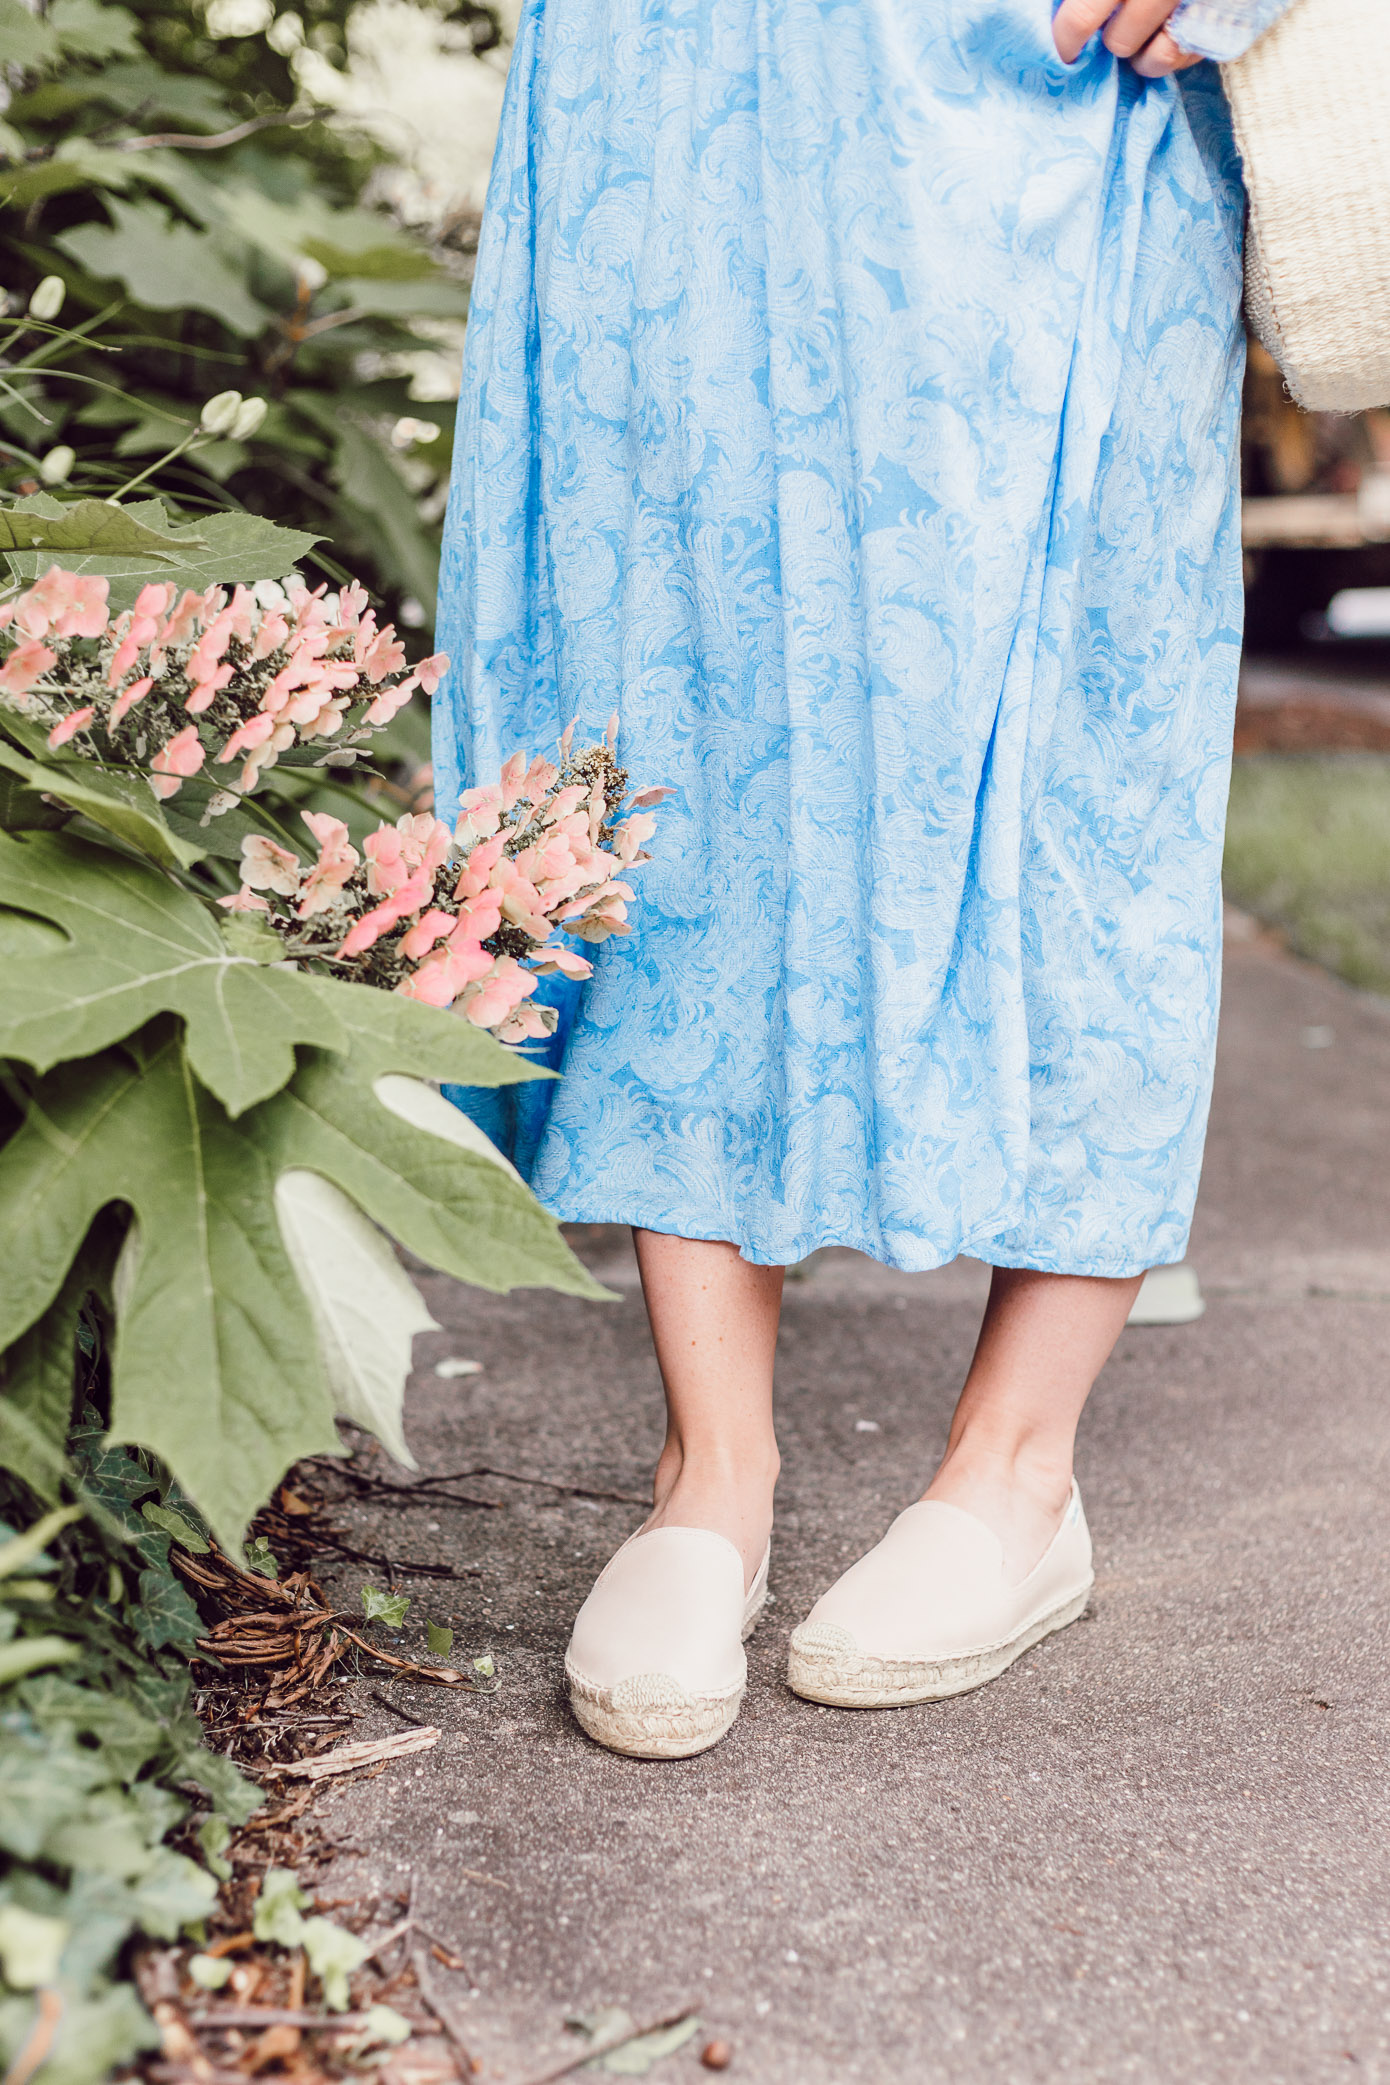 Soludos Espadrille Smoking Slippers   Blue Kimono Dress for Summer styled on Louella Reese